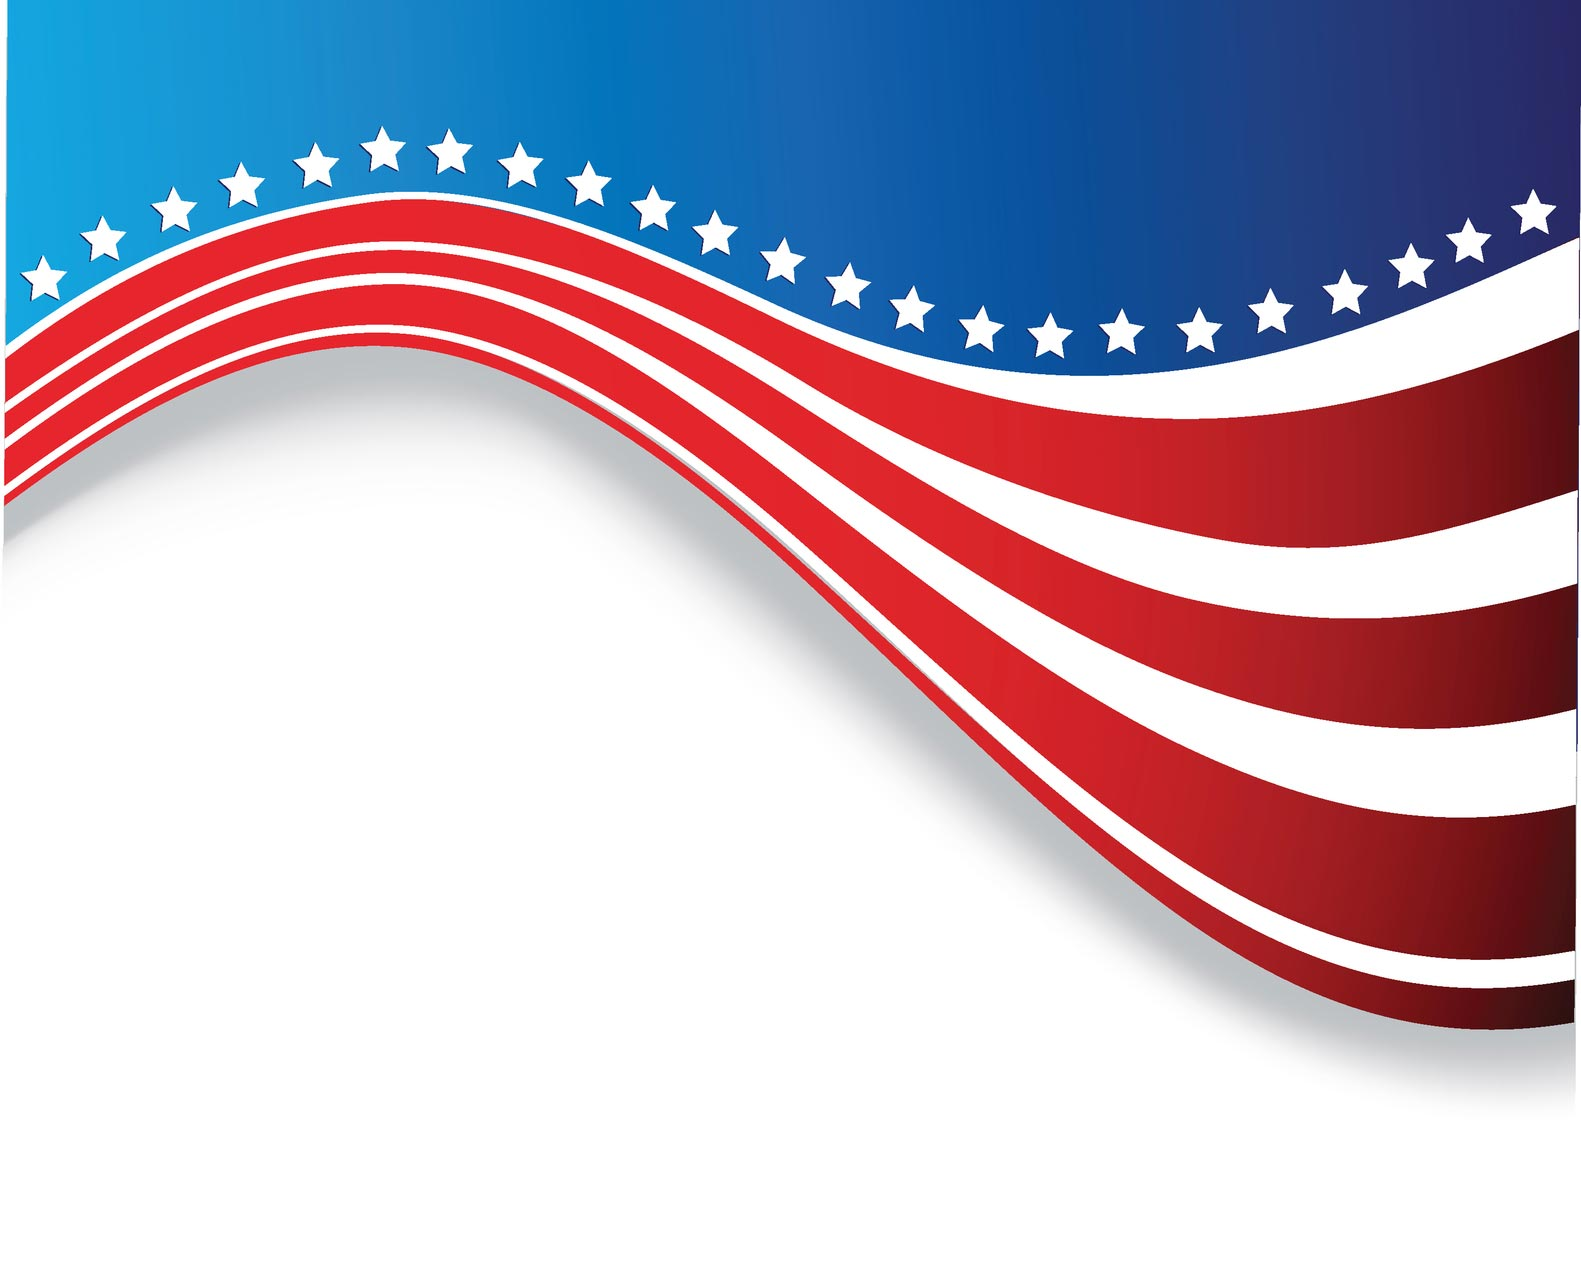 American Independence Day Wallpaper 1581x1264